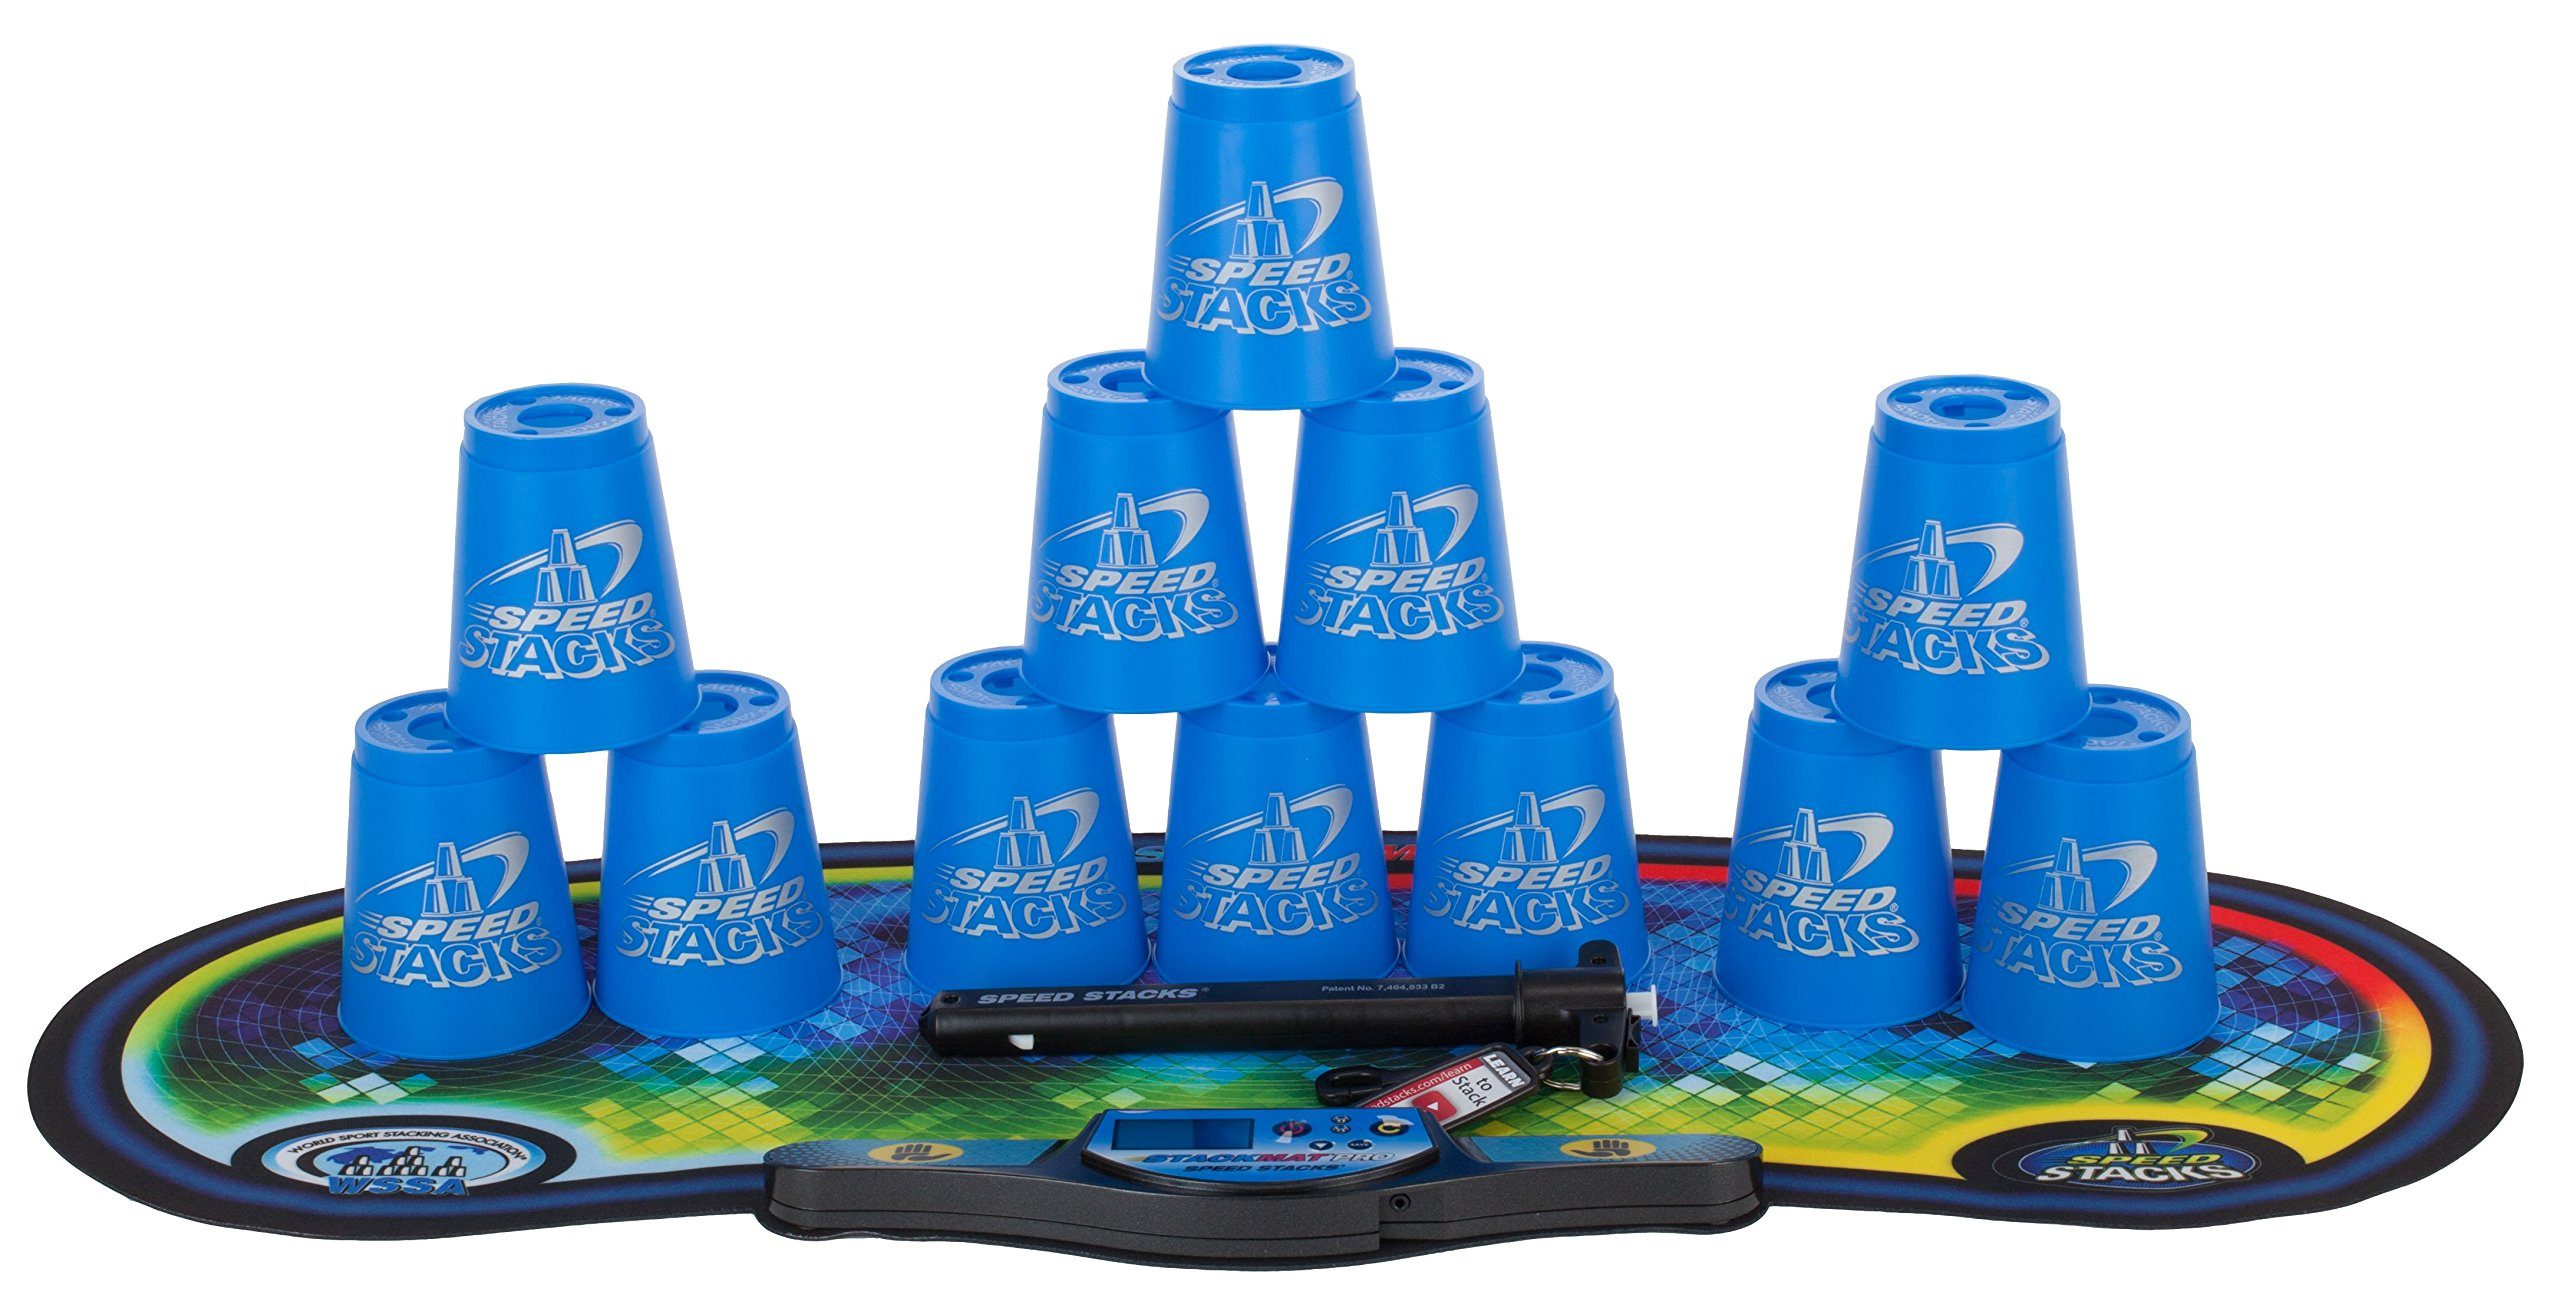 Speed Stacks Cups Competitor Sport Stacking Set Mat And Pro Timer Blue 12 Cups 696734103744 Ebay